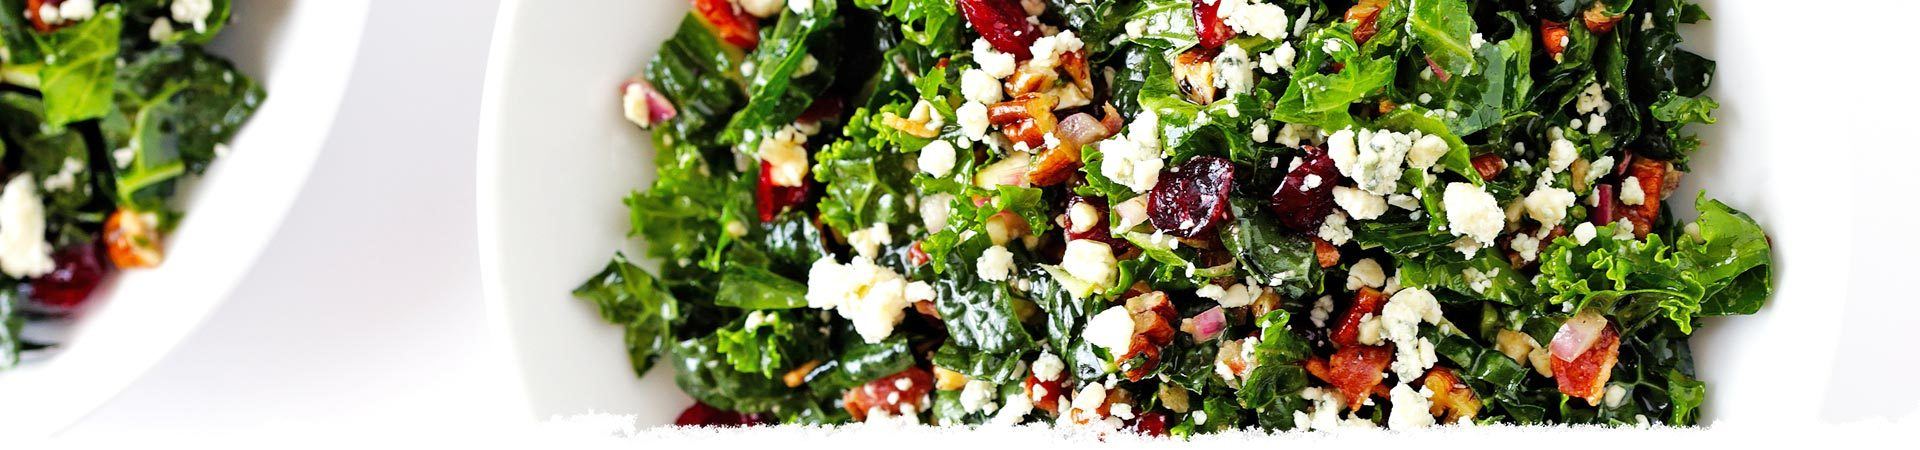 Kale Salad with Bacon and Blue Cheese